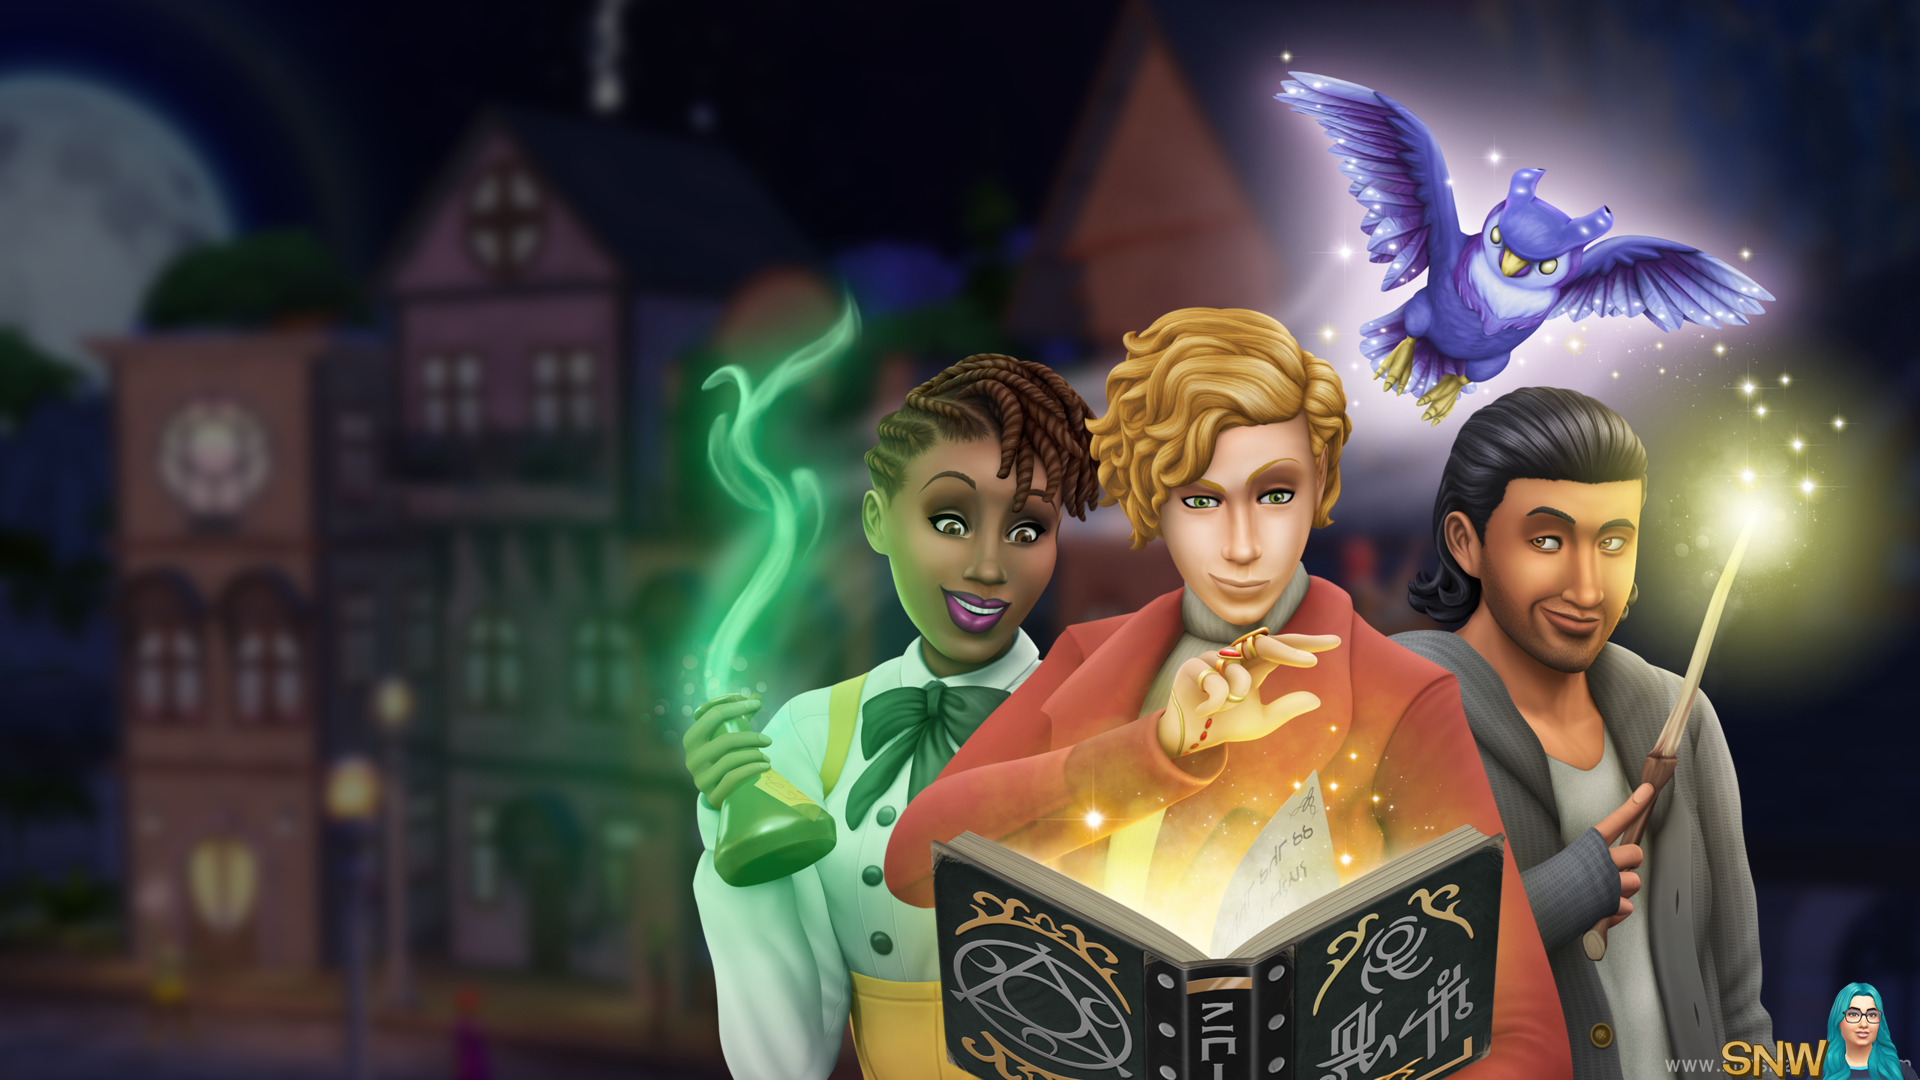 Realm Of Magic Wallpapers Snw Simsnetwork Com